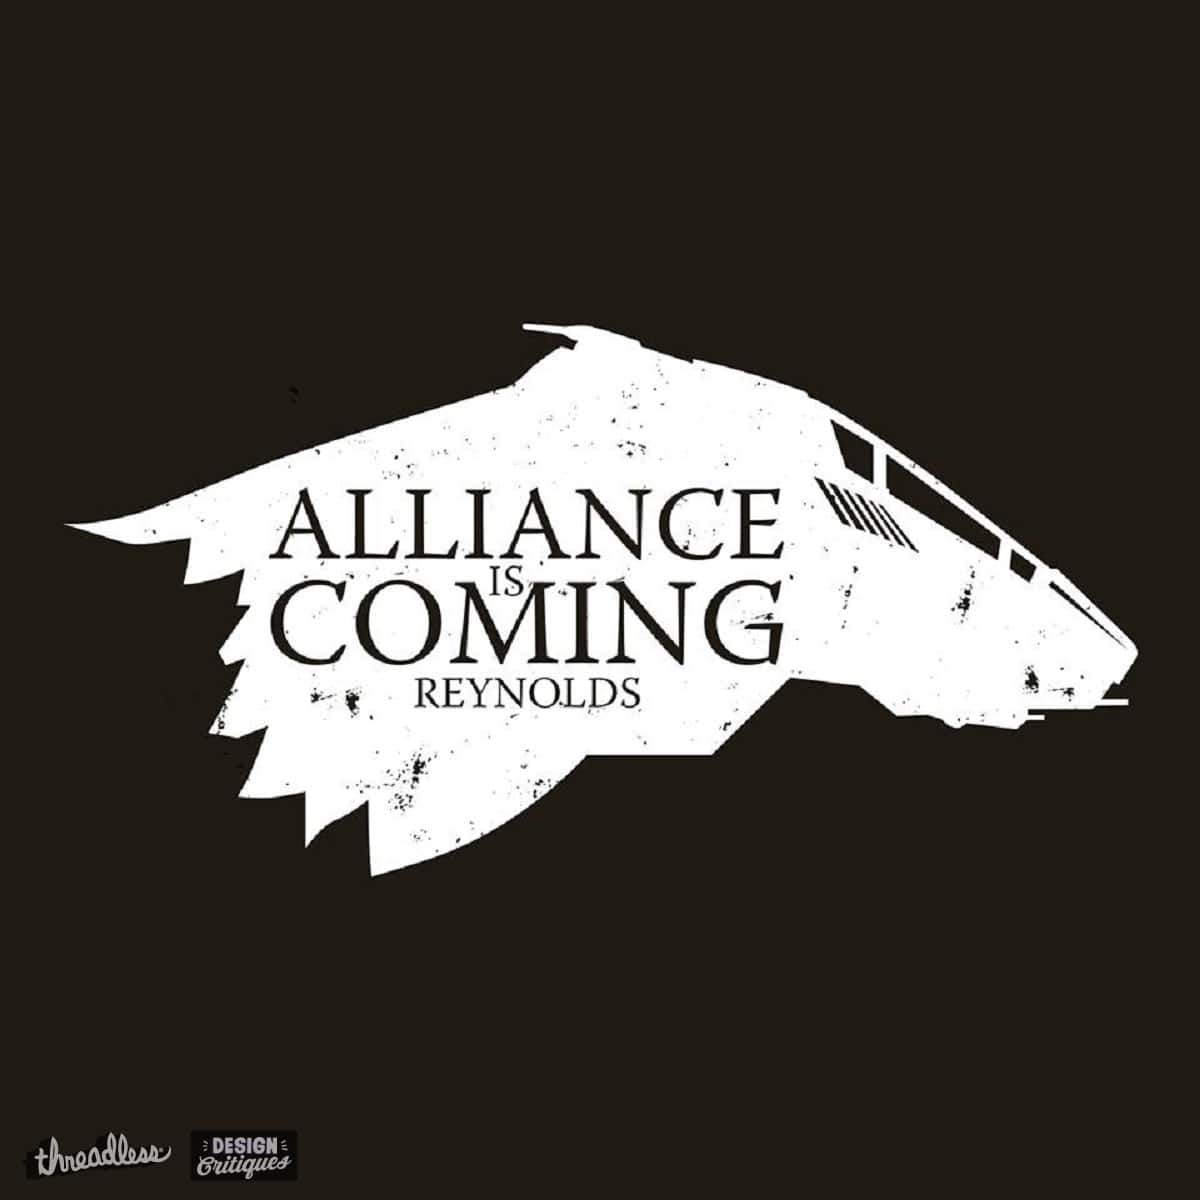 Alliance is Coming by stevegoll68 on Threadless